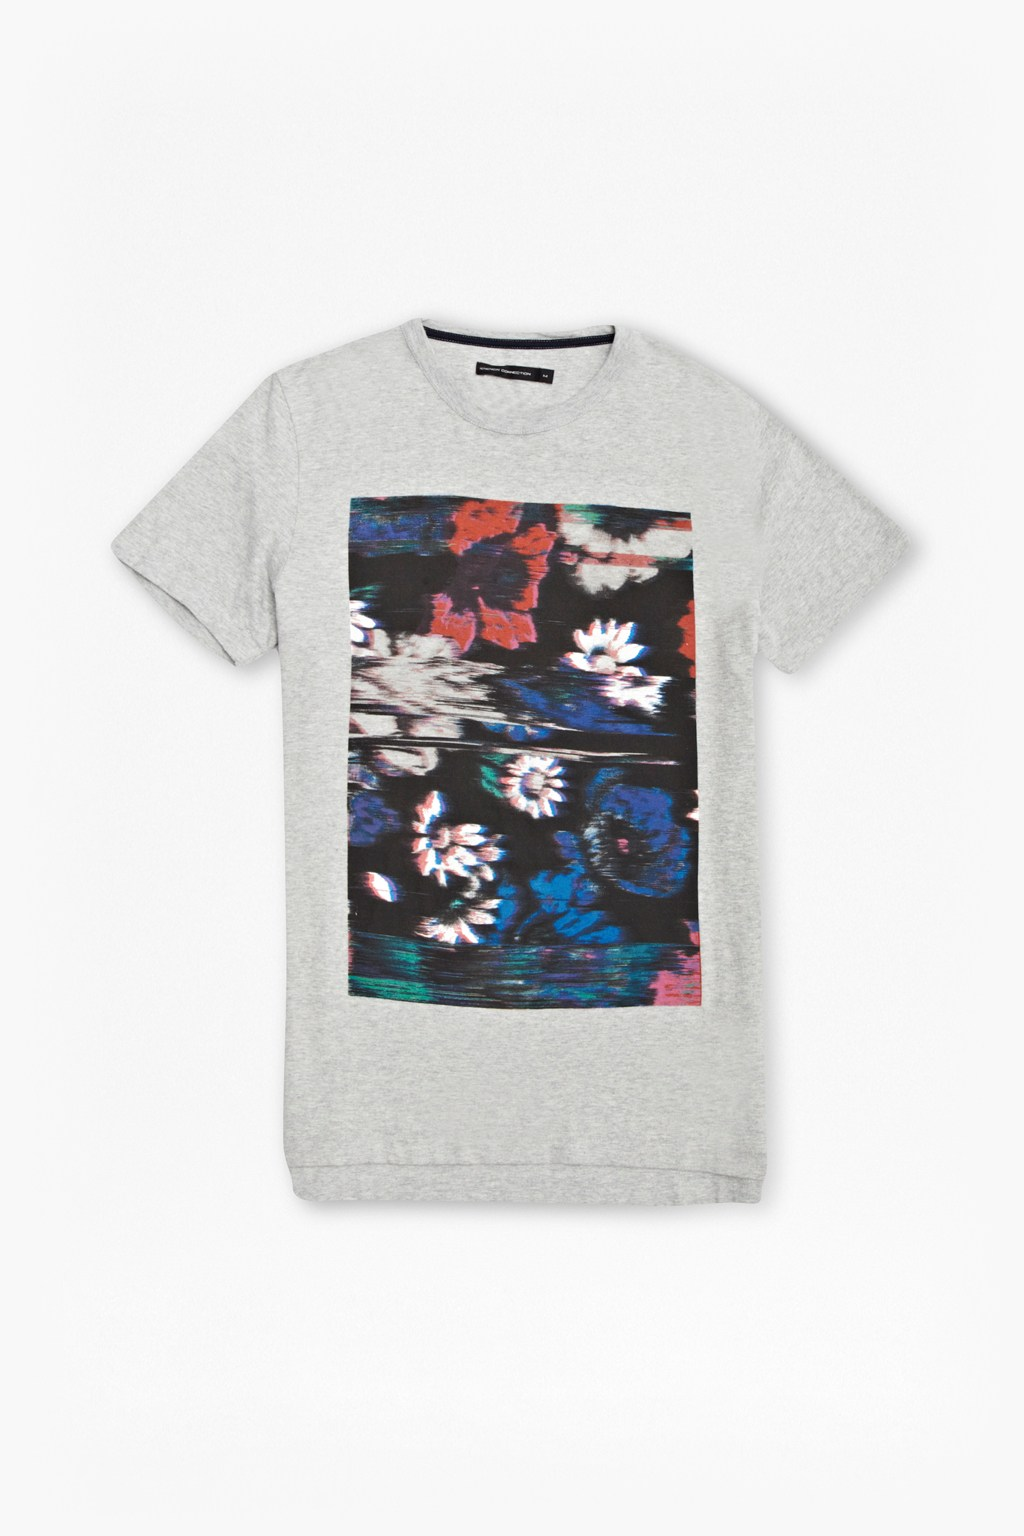 Flower glitch graphic t shirt sale french connection for T shirt graphics for sale